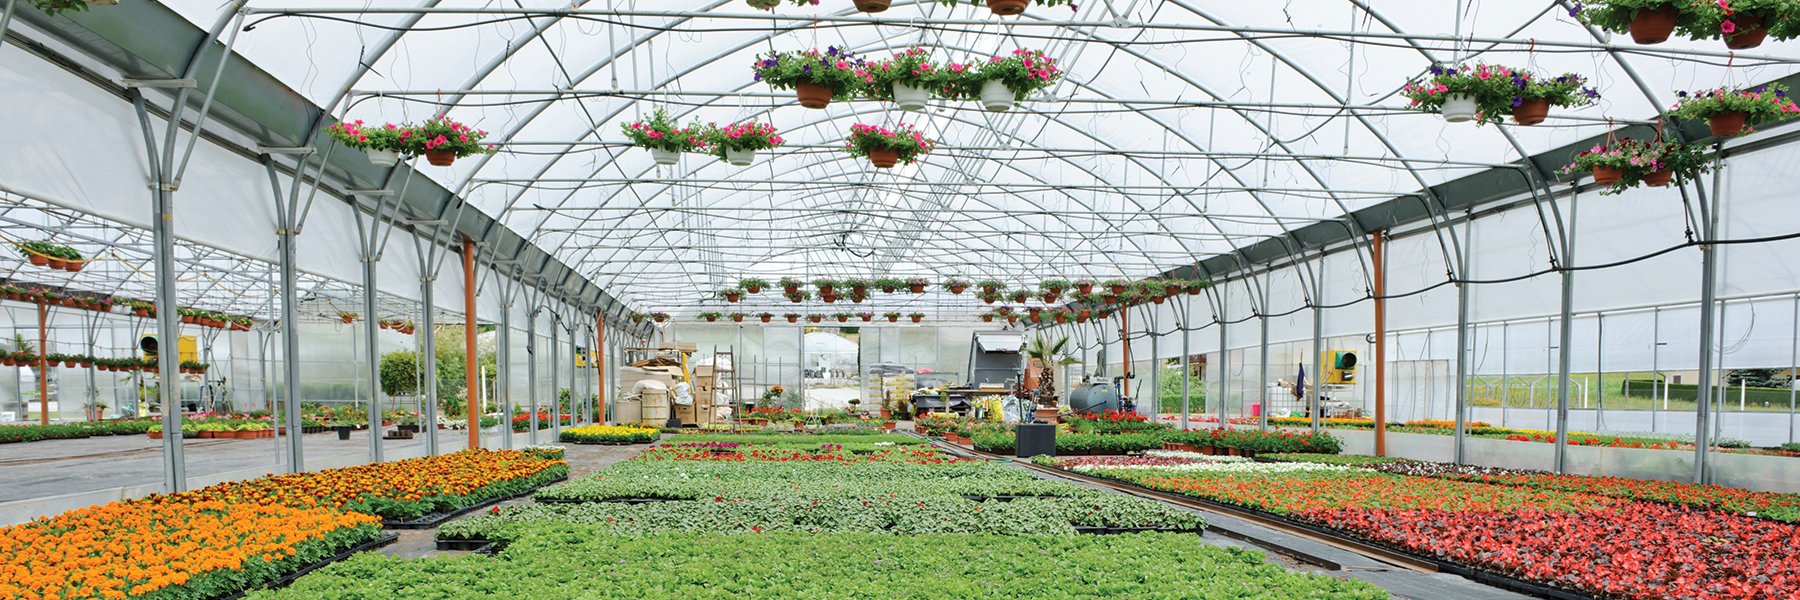 Floral Greenhouse